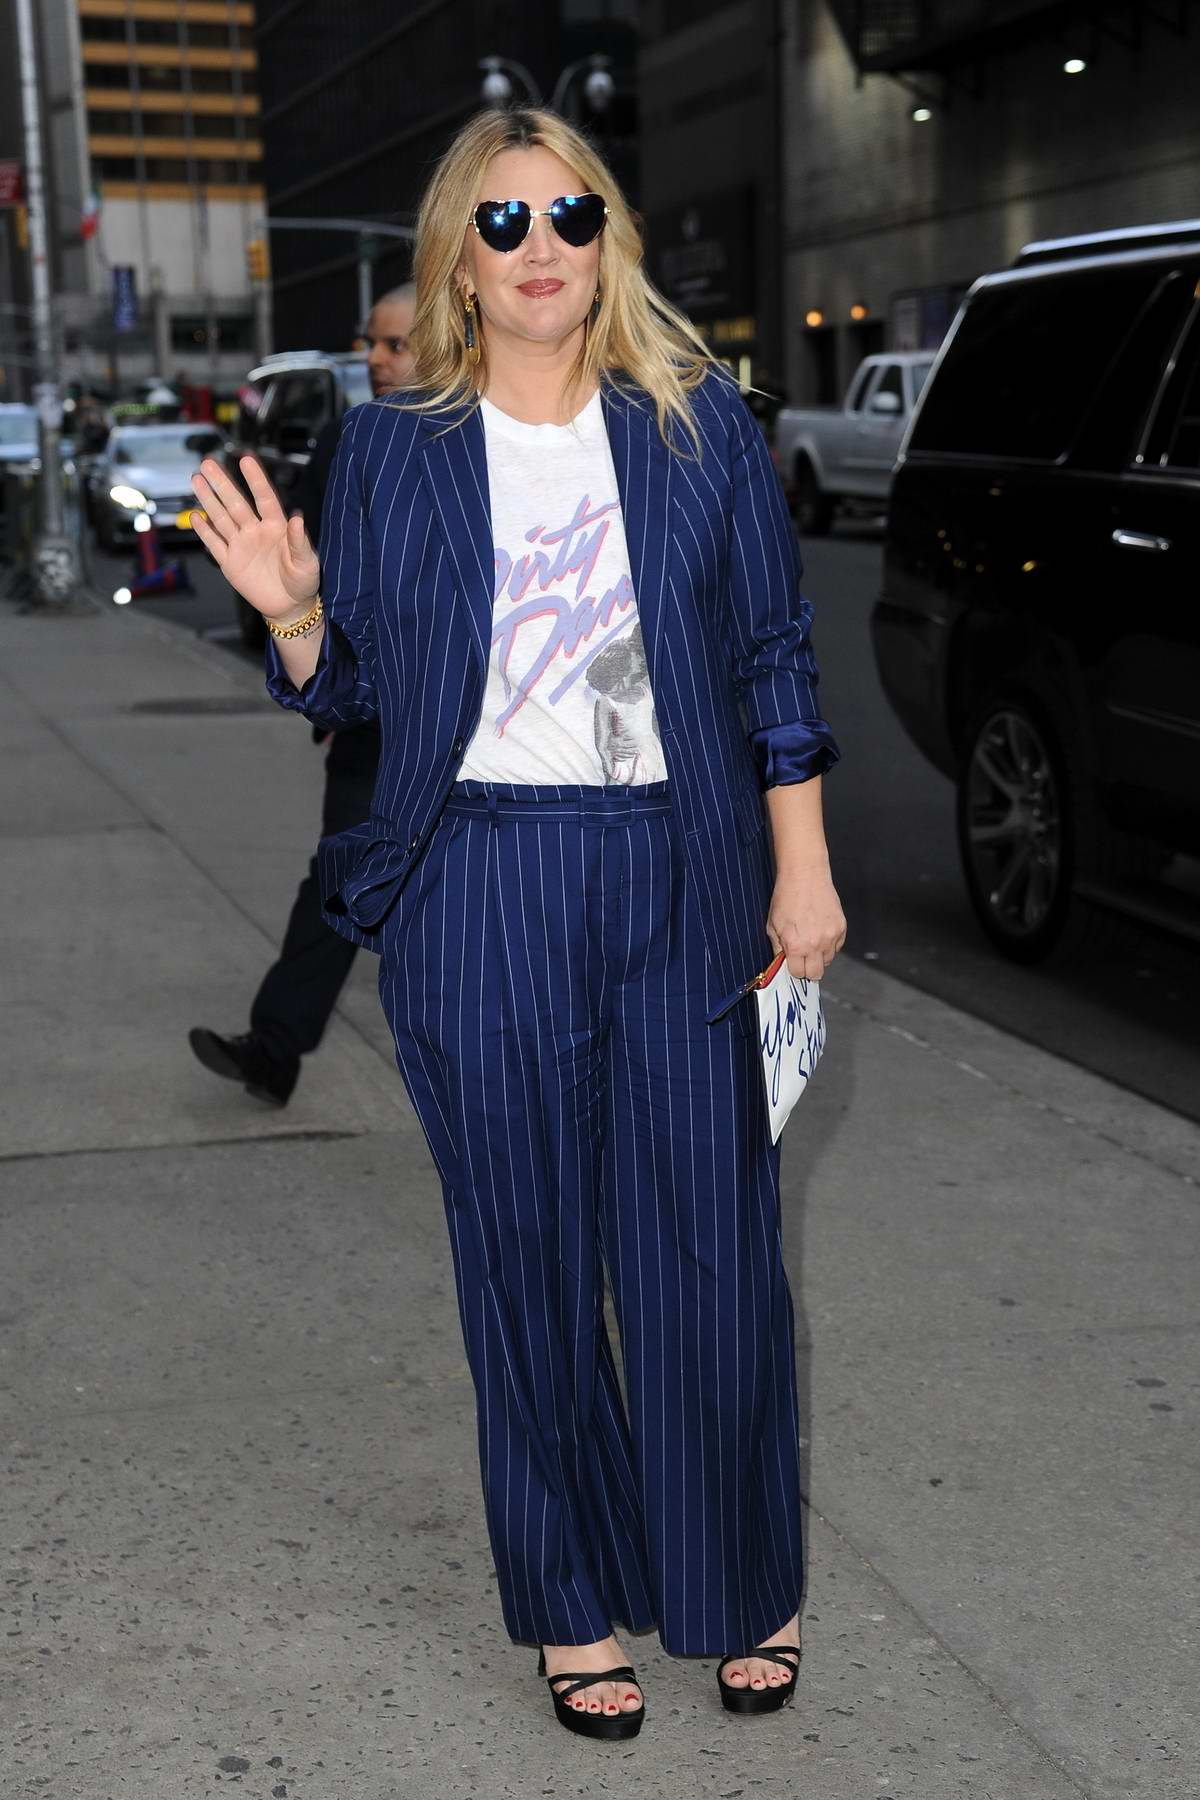 Drew Barrymore wears a pinstripe pantsuit with heart shaped glasses as she arrives at 'The Late Show with Stephen Colbert' in New York City